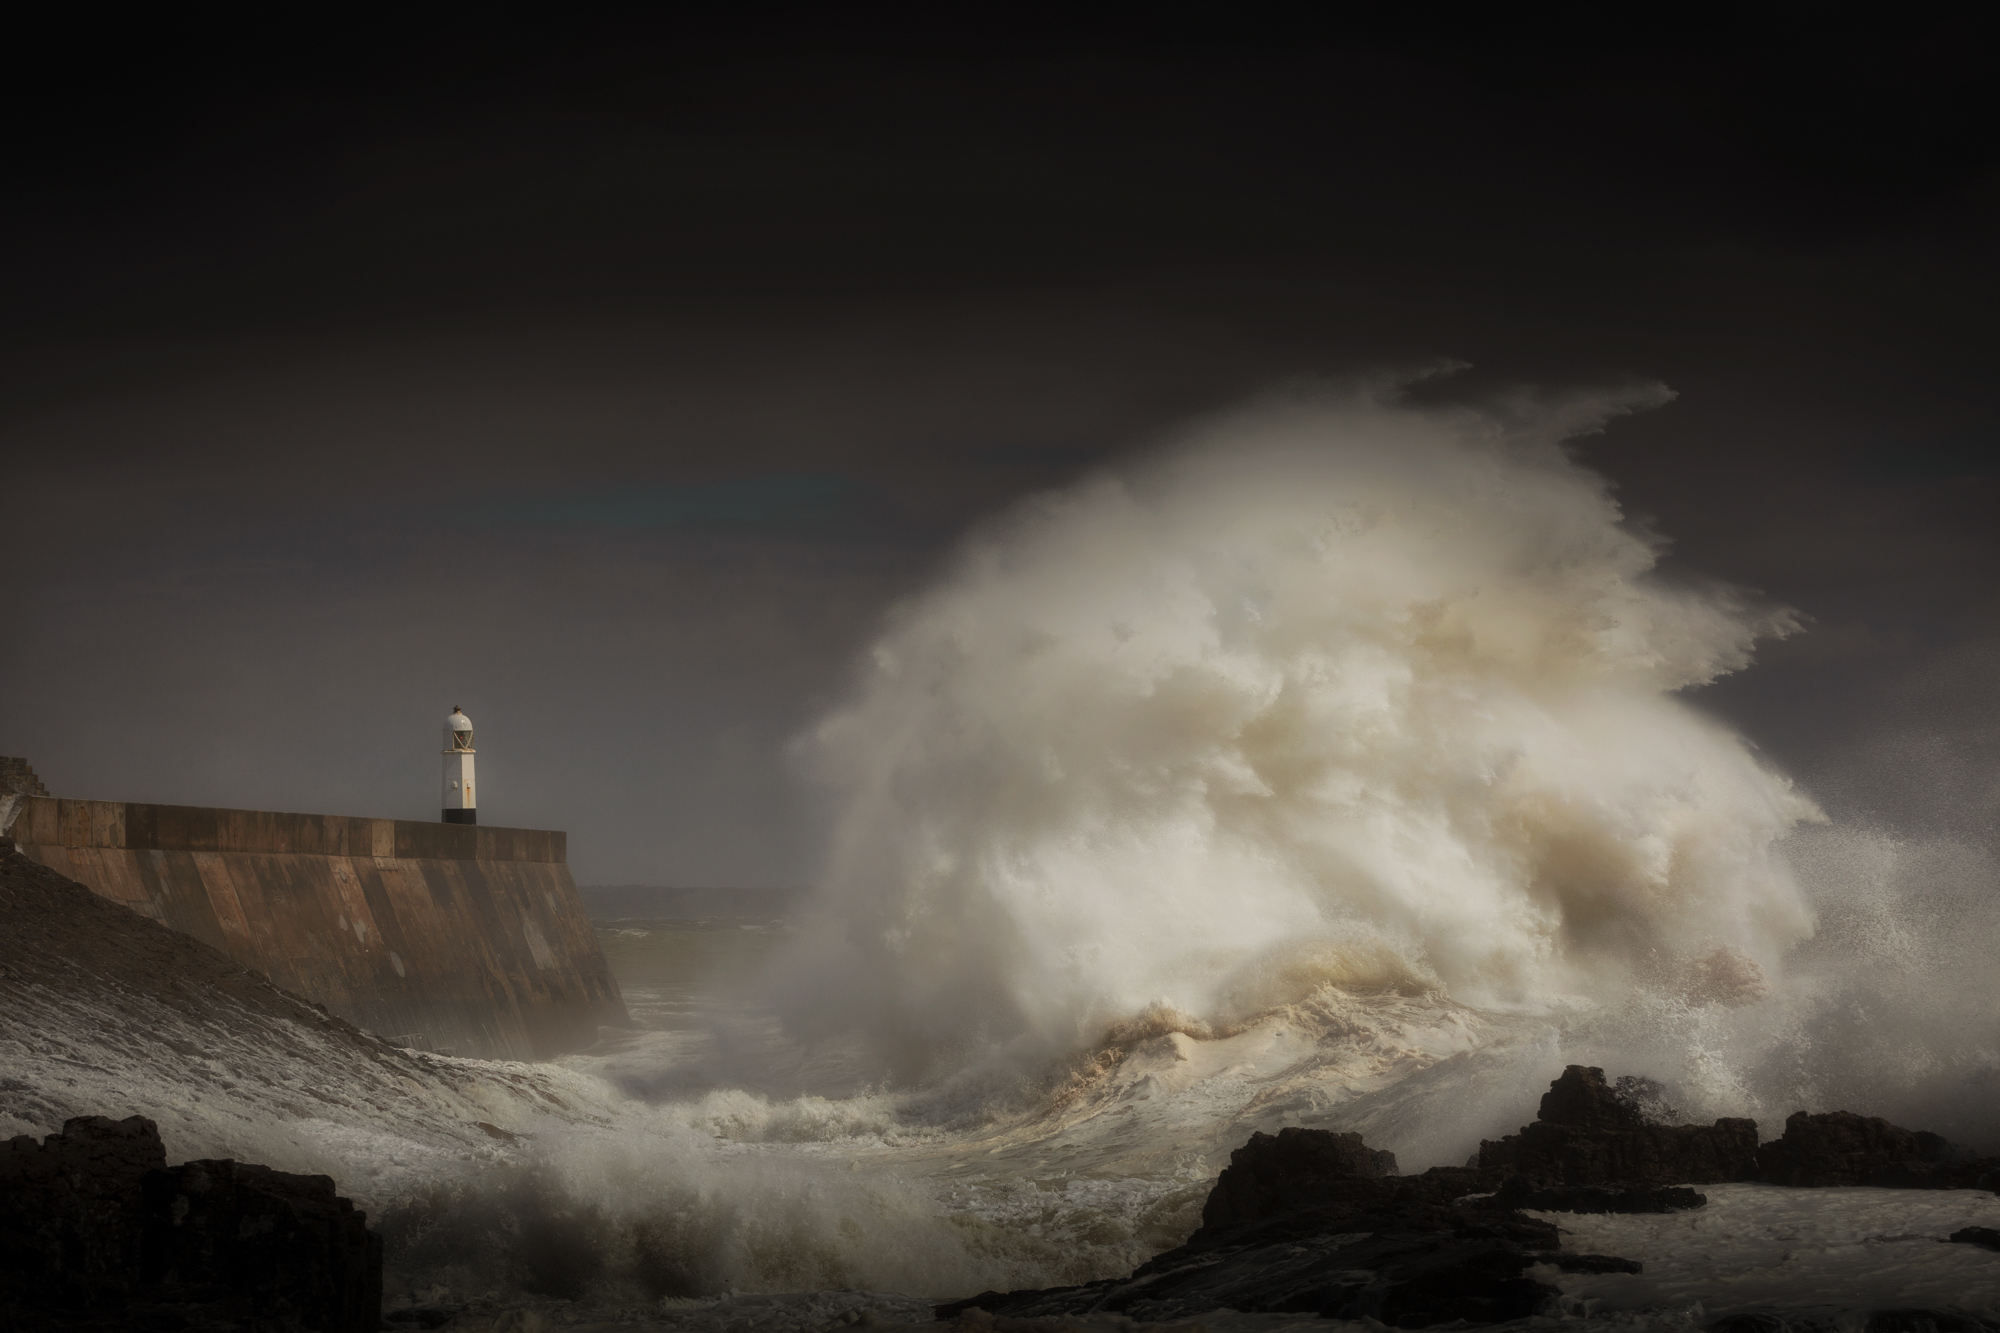 Porthcawl lighthouse and pier in the jaws of a storm on the coast of South Wales, UK